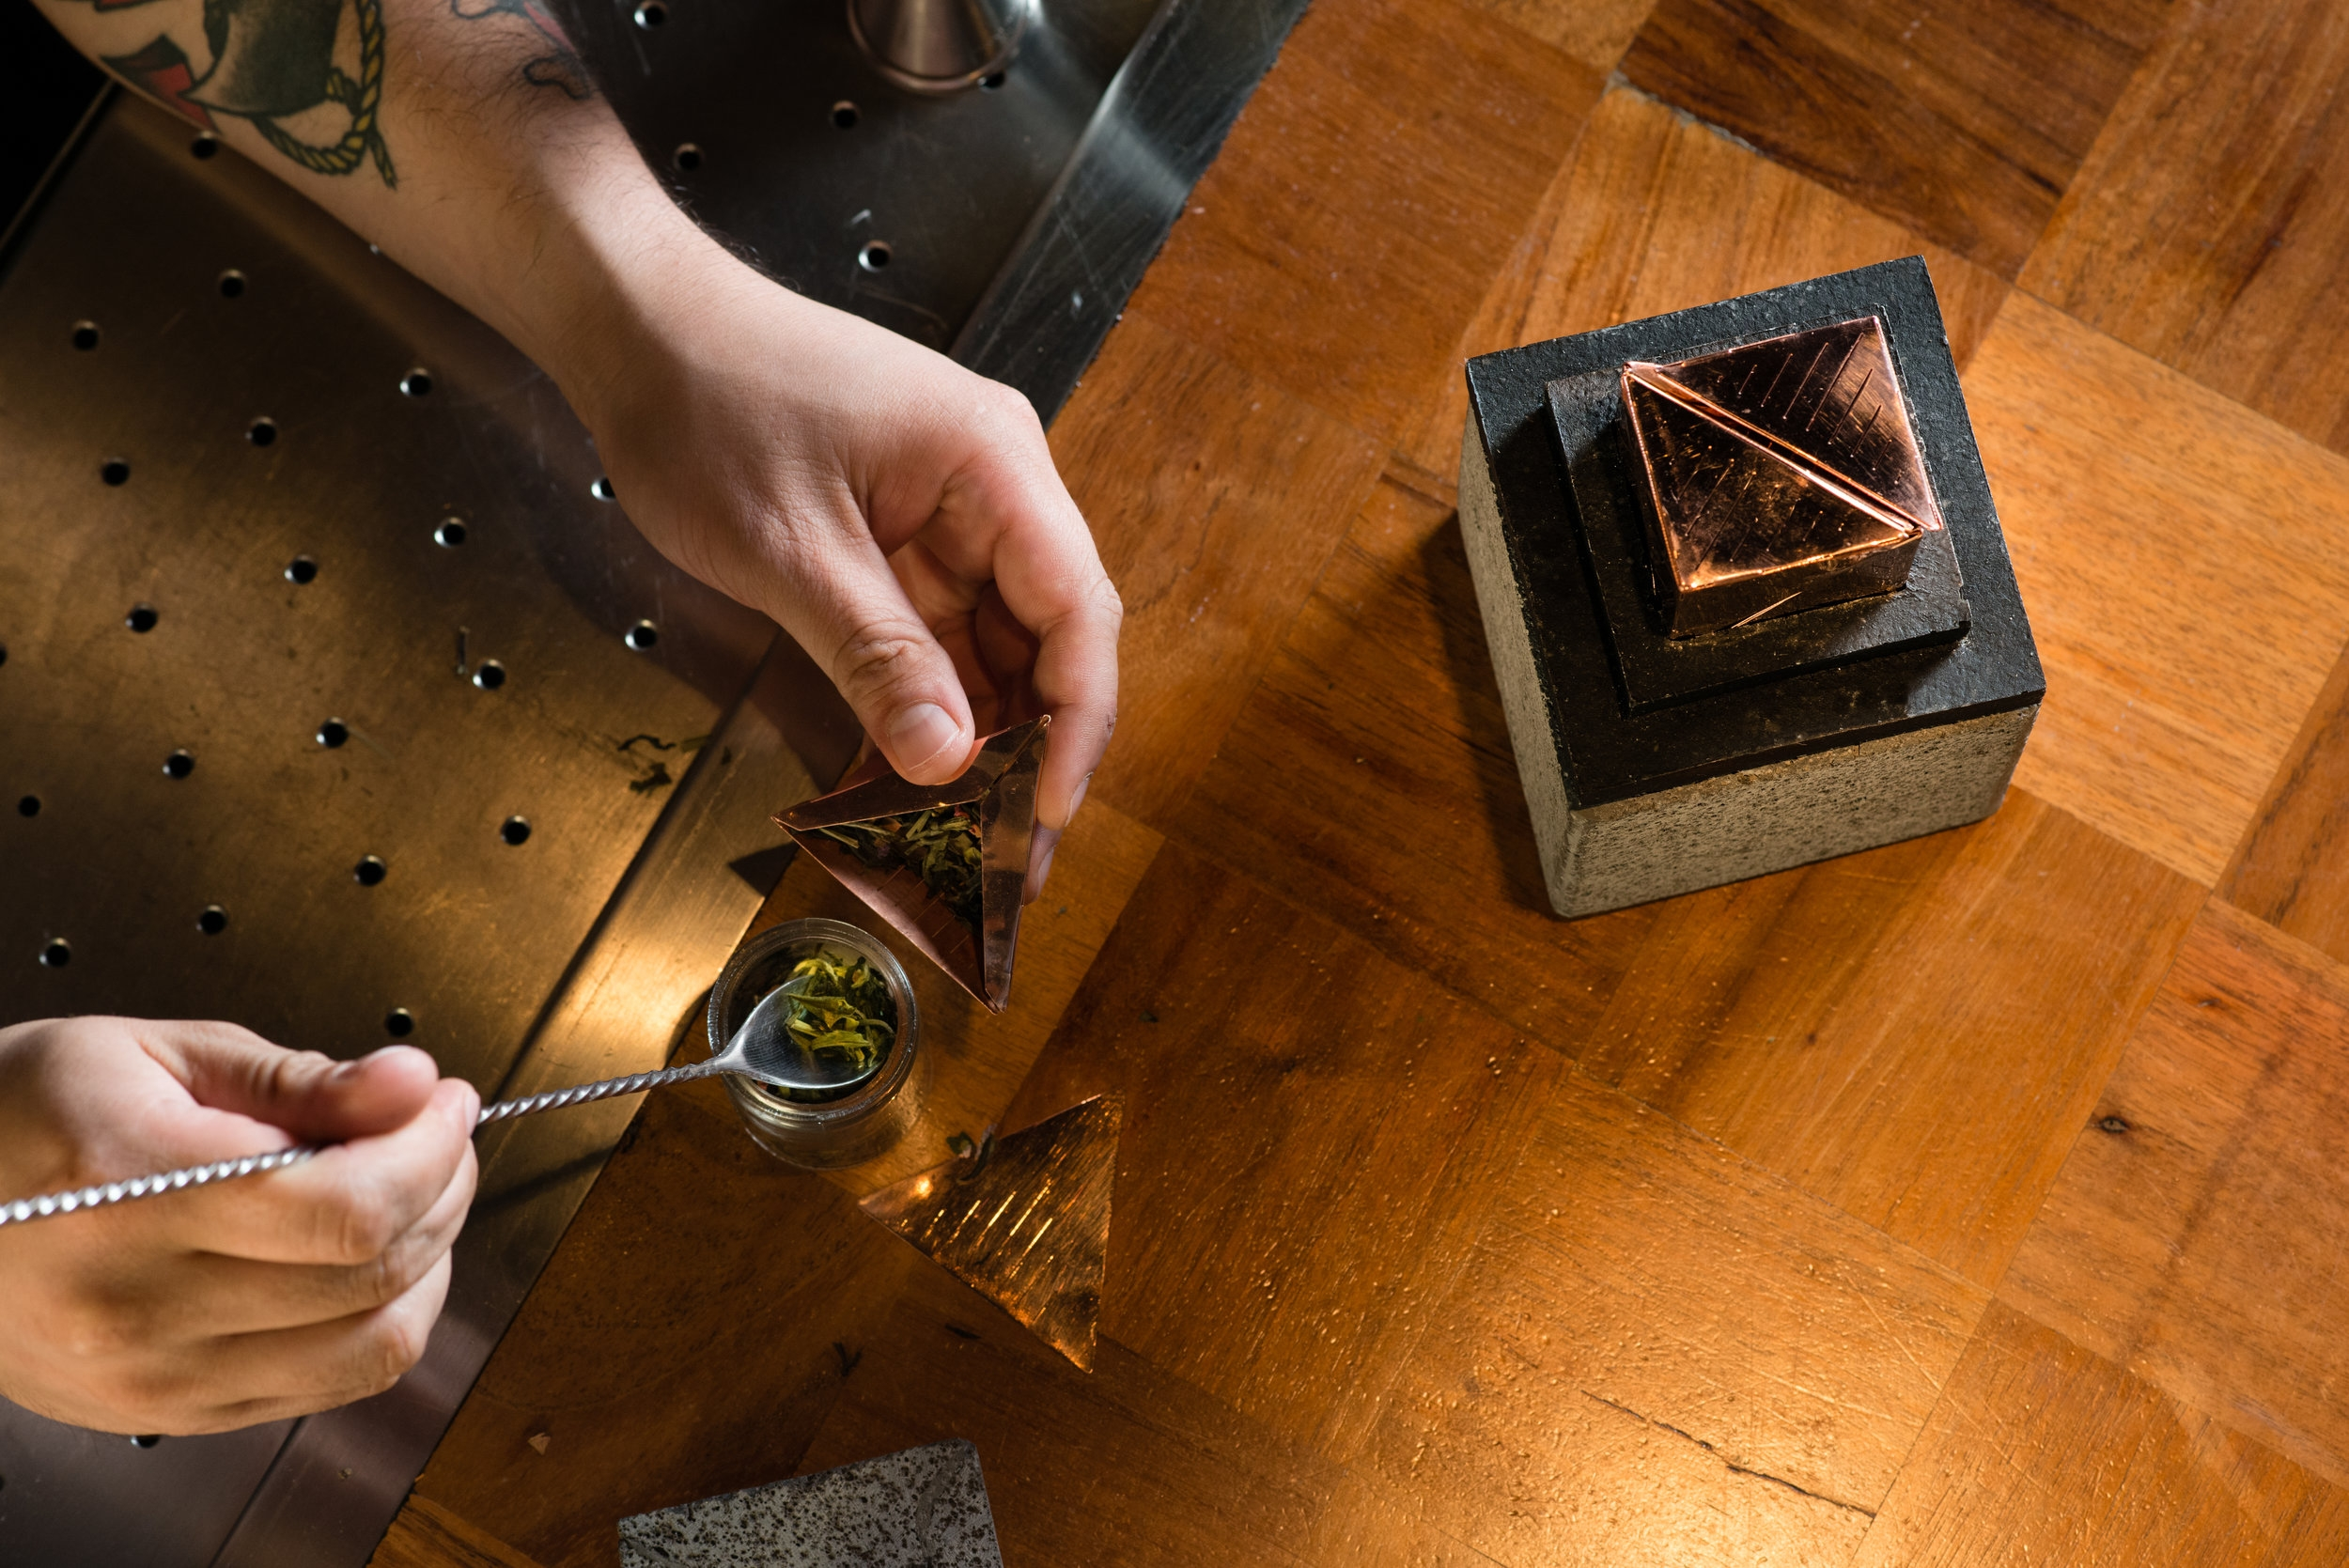 SHARING EXPERIENCE   The Copper Catalyst benefits from its separate infusers, giving the opportunity for people to share the experience while having the chance to individually personalize each drink.